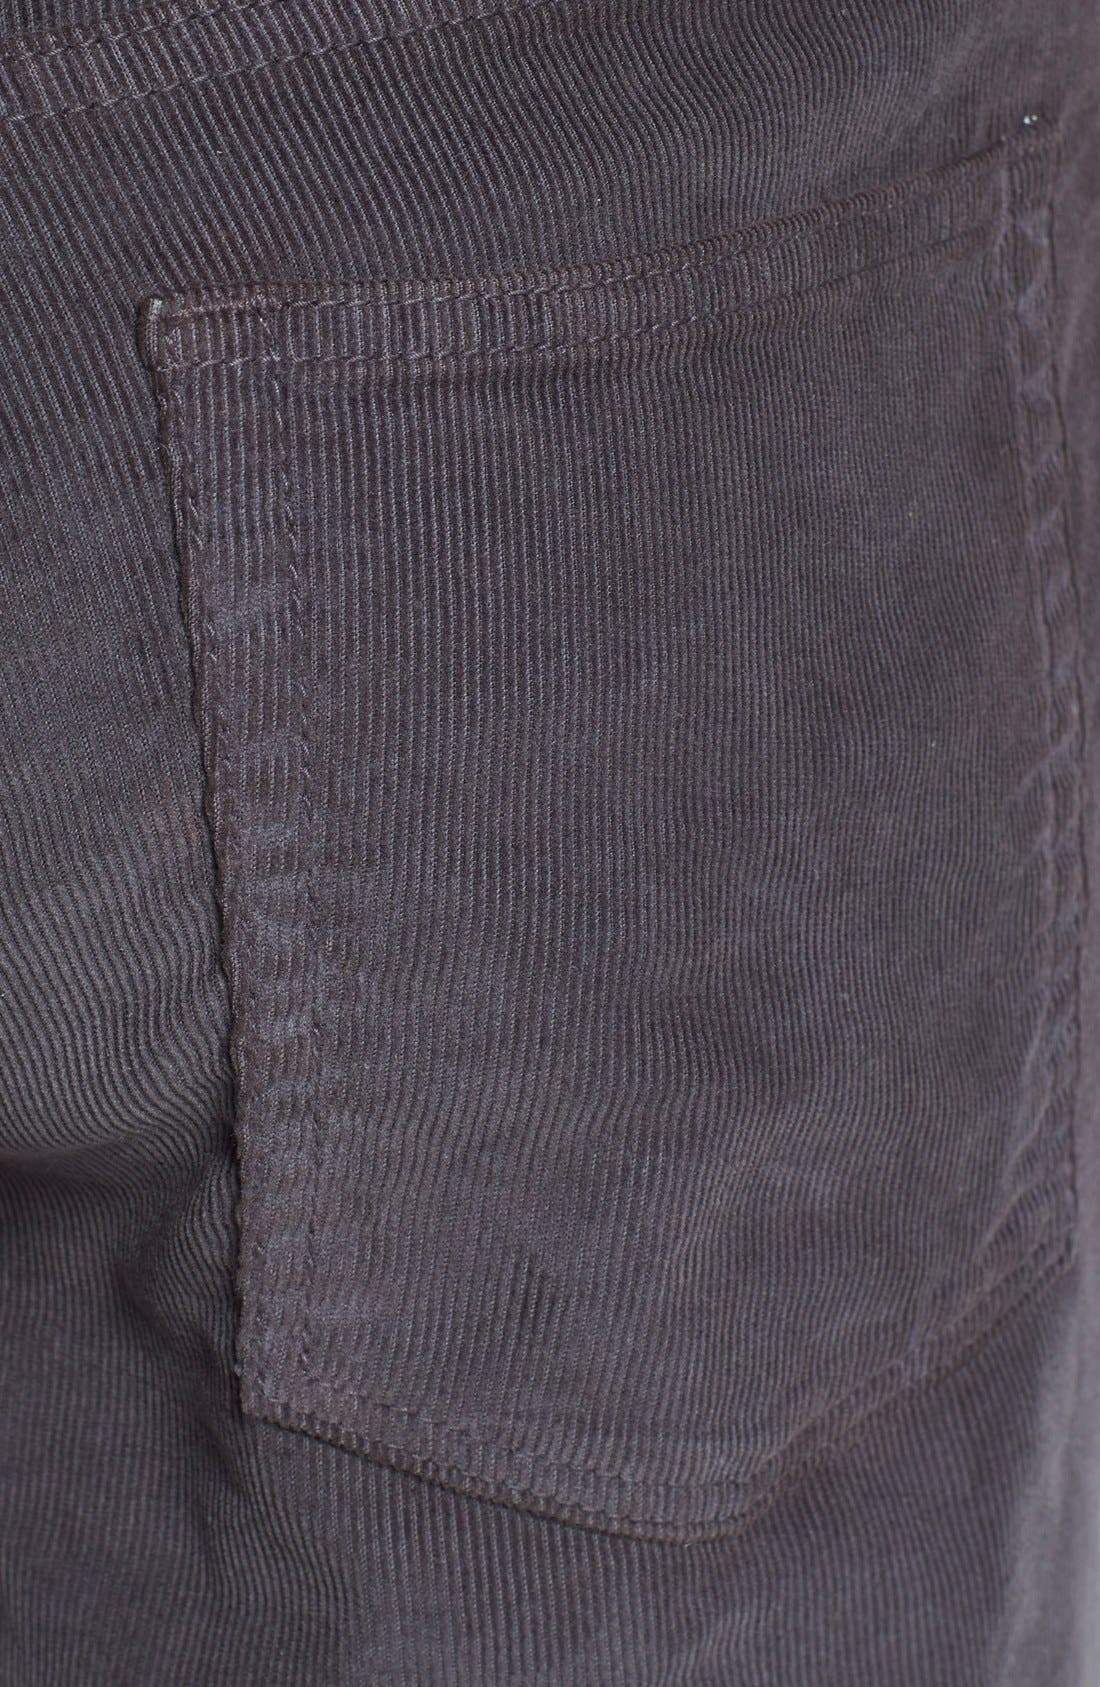 BONOBOS,                             Straight Leg Five-Pocket Corduroy Pants,                             Alternate thumbnail 4, color,                             020